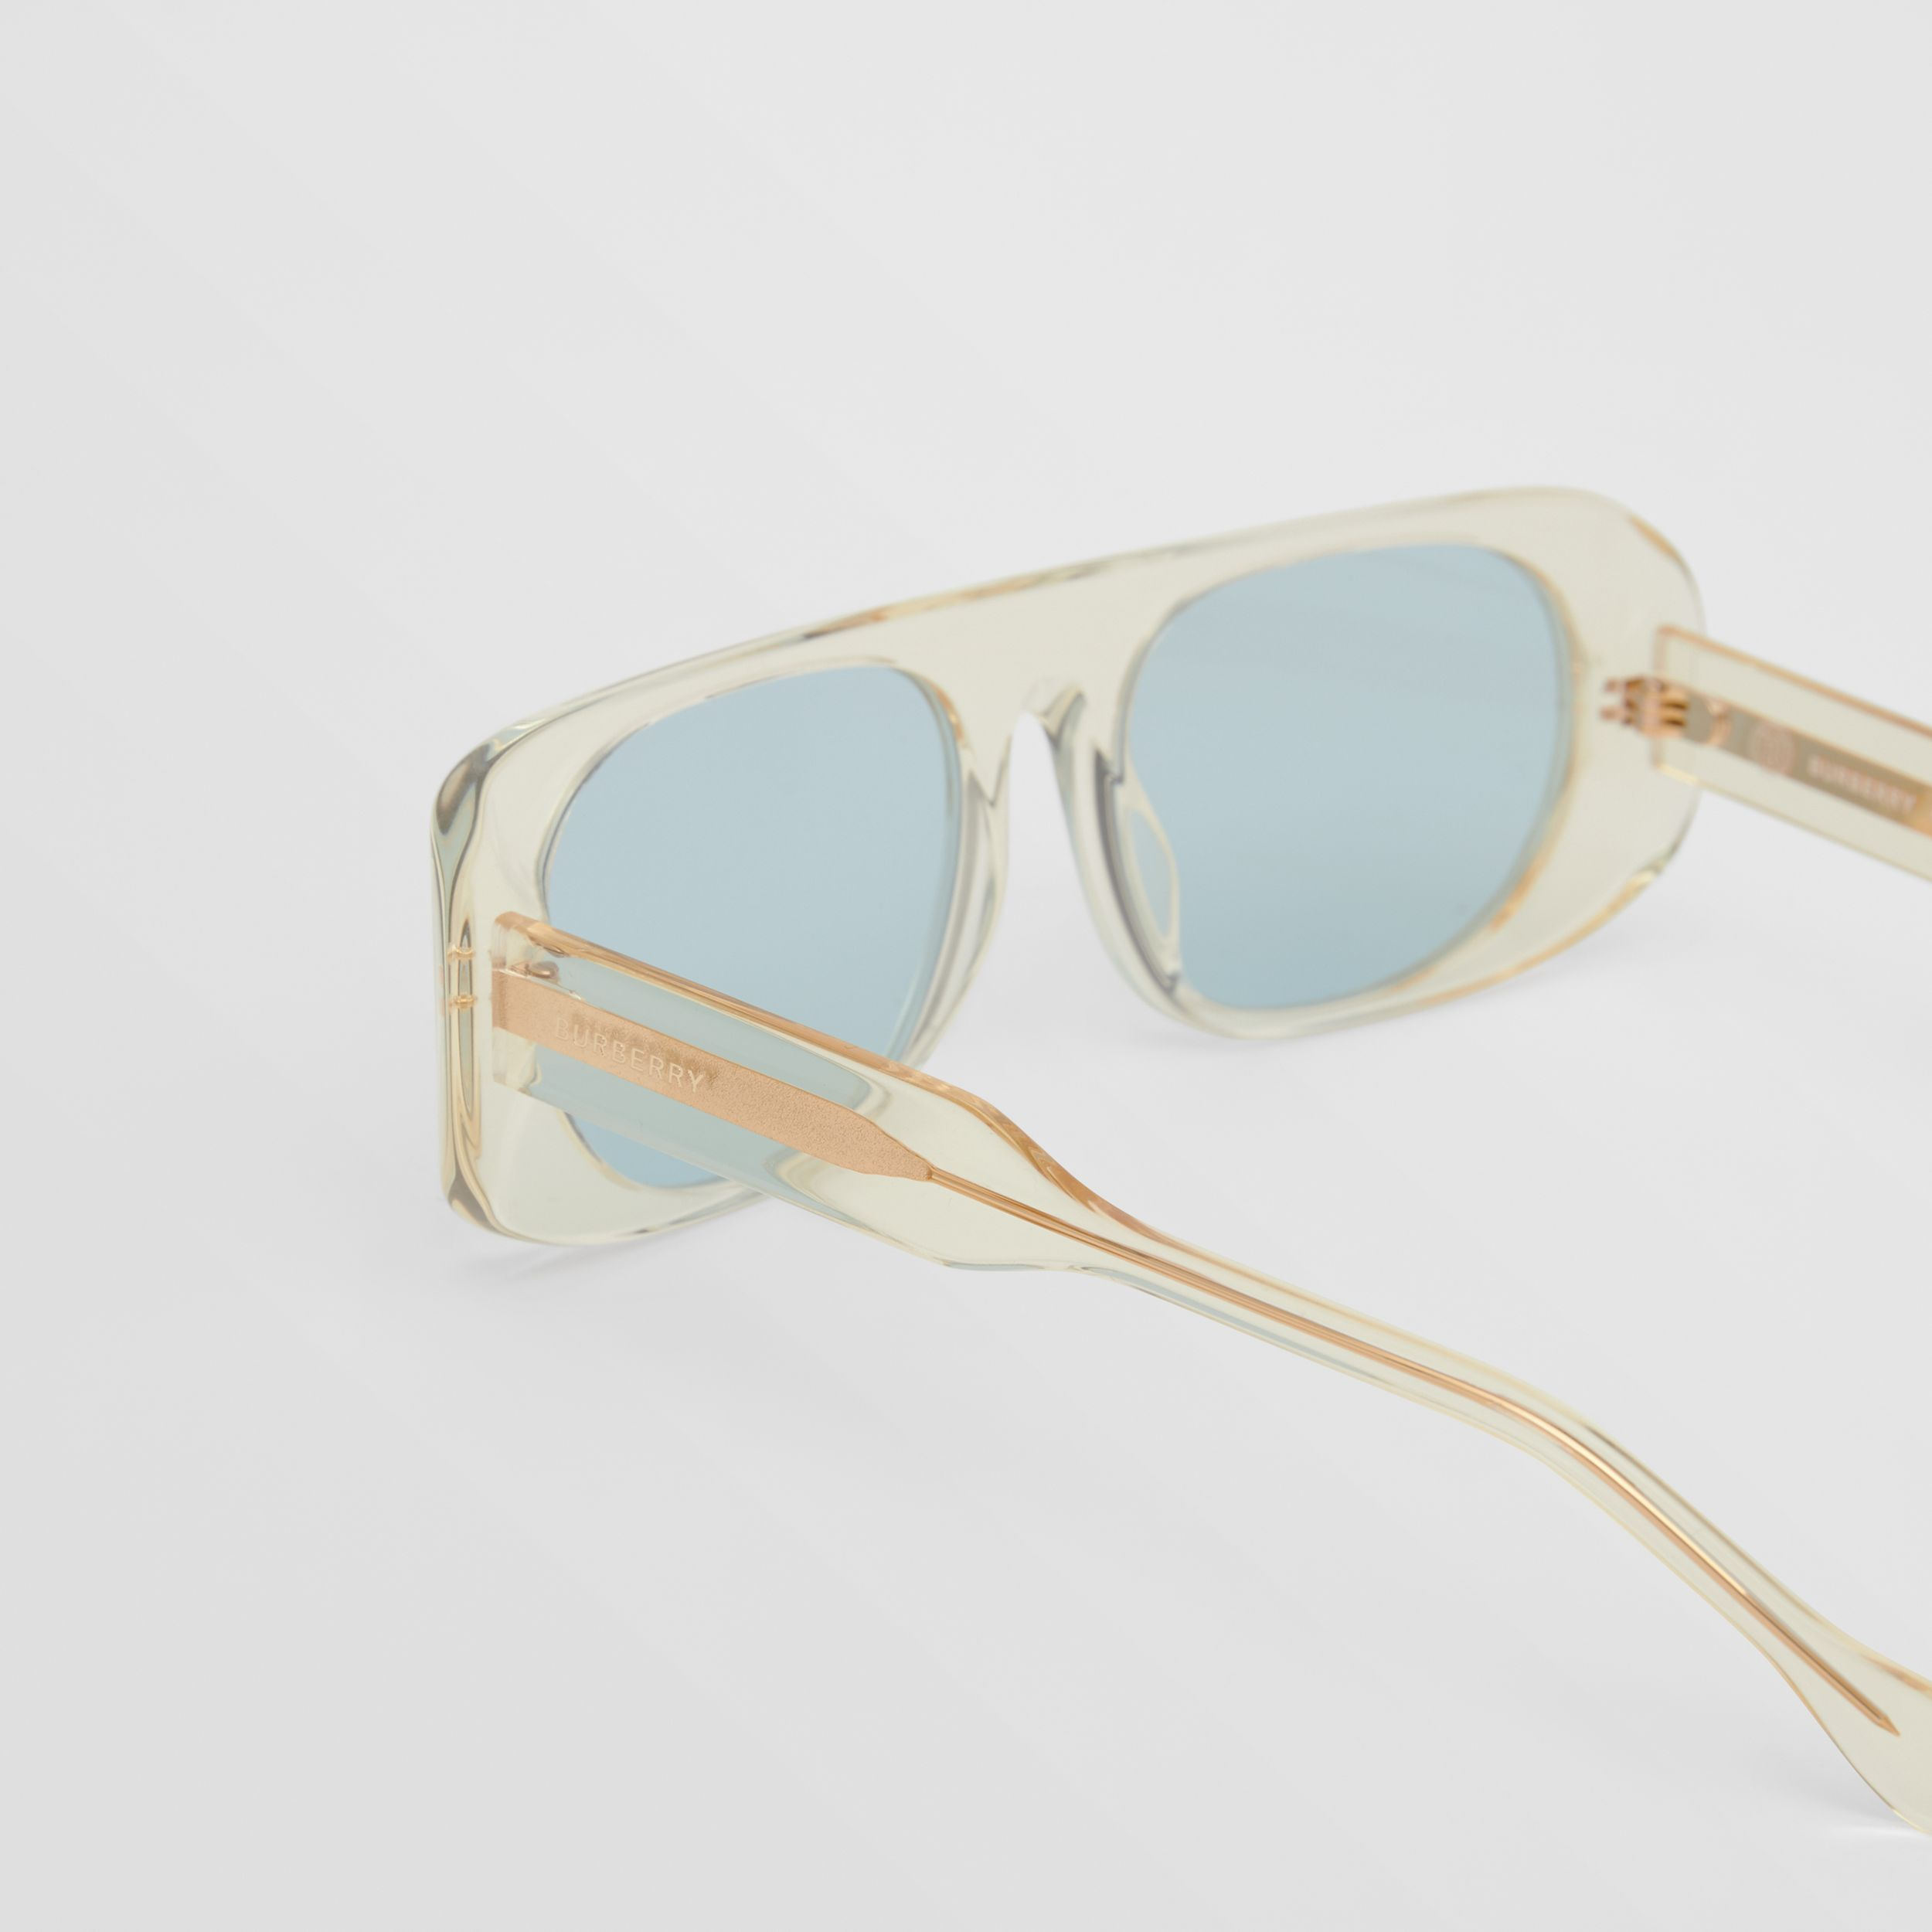 Blake Sunglasses in Transparent Champagne | Burberry - 2